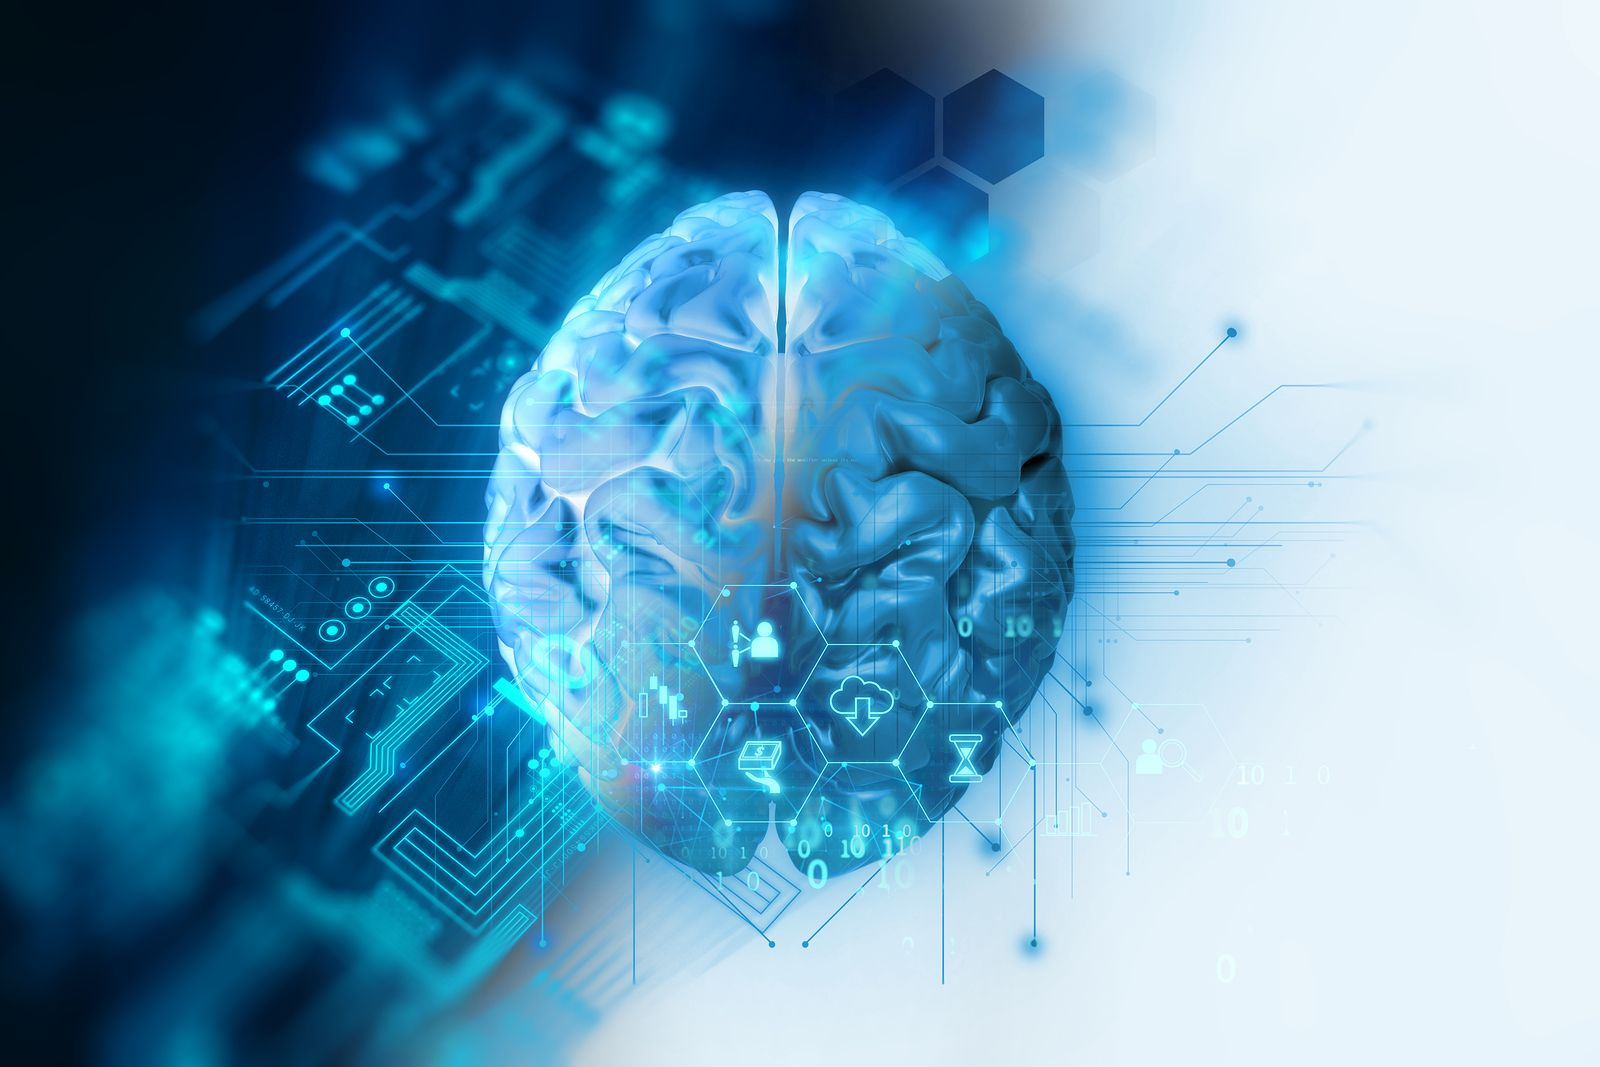 Affective Computing Market Opportunity Analysis and